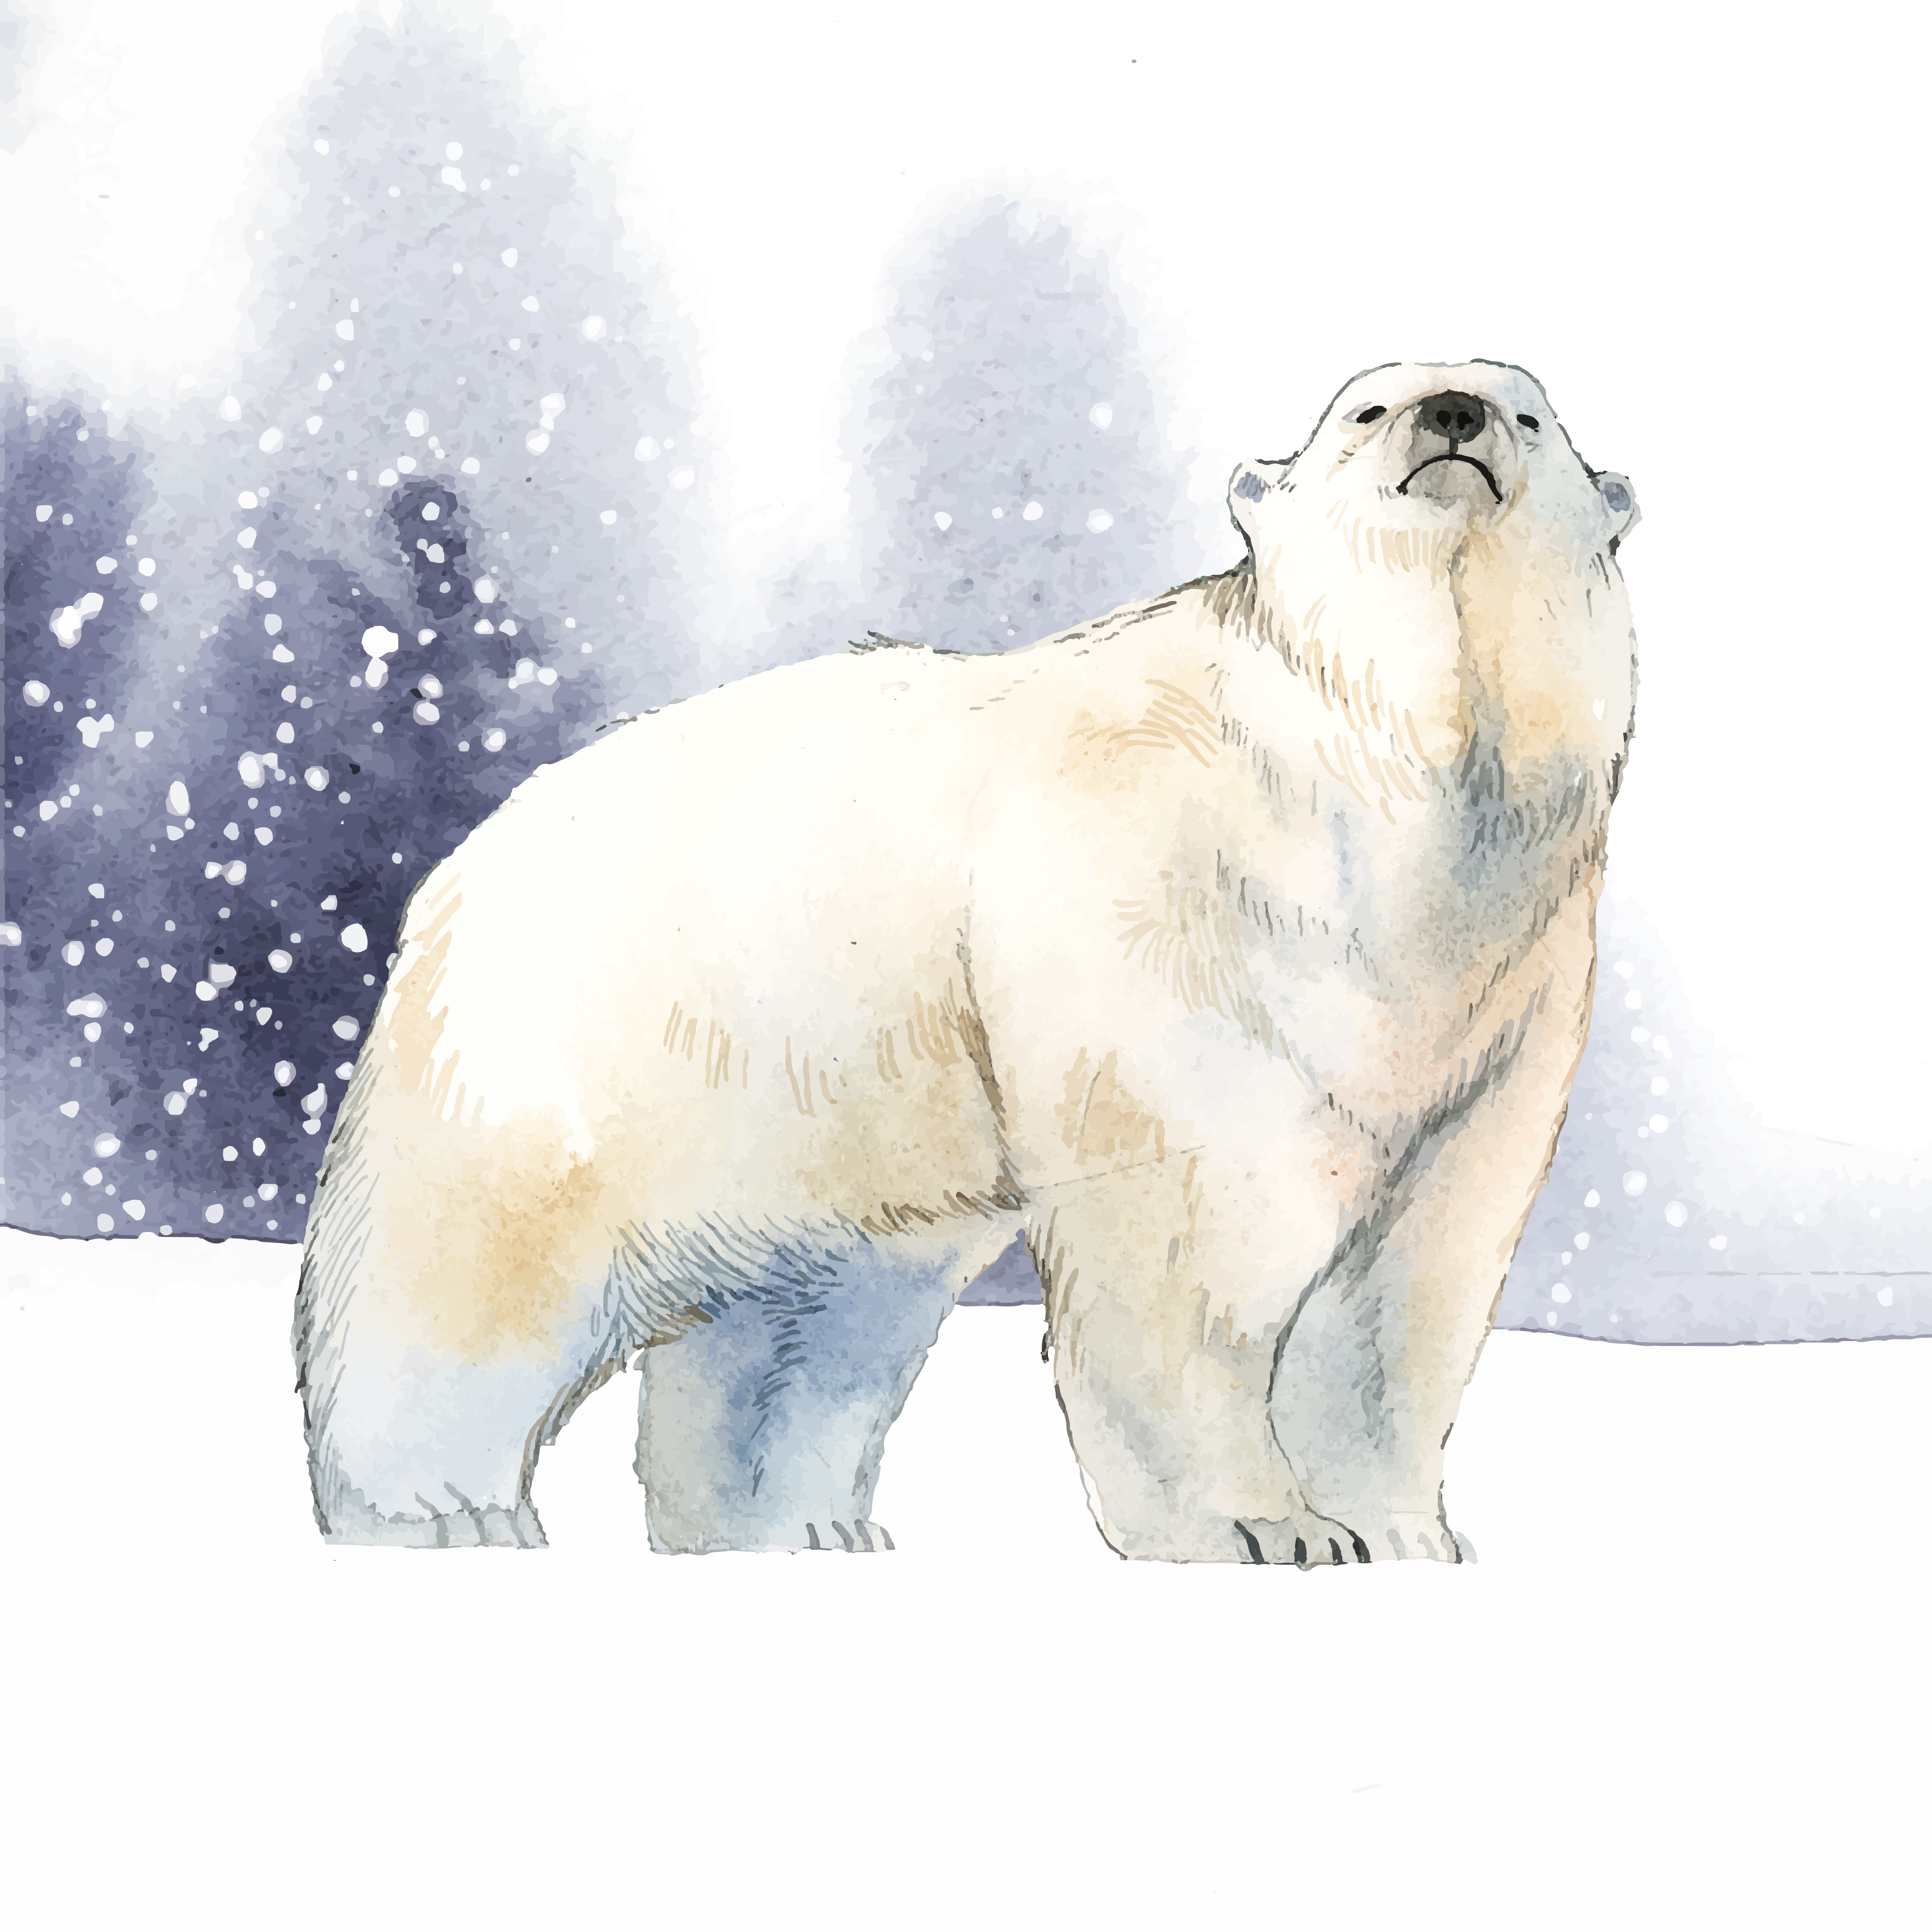 Hand Drawn Polar Bear In The Snow Watercolor Style Vector